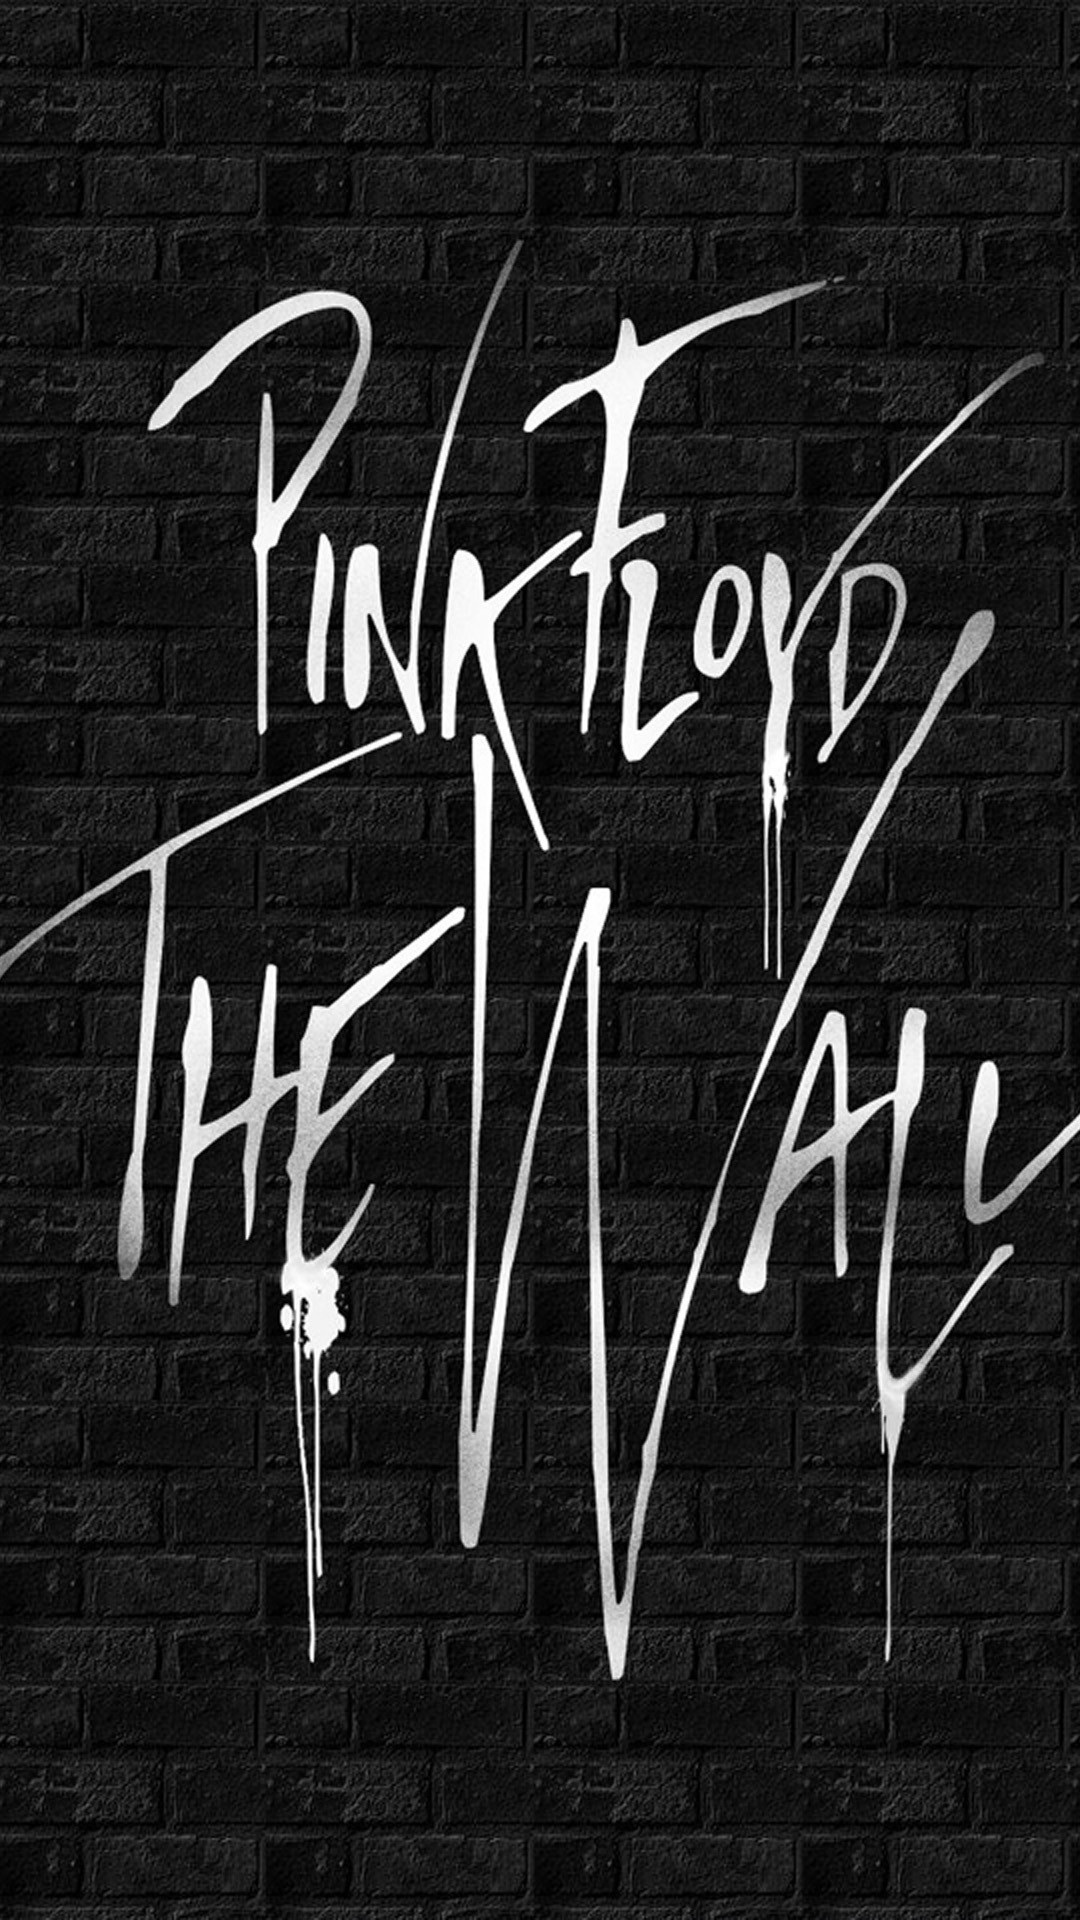 … hd pink floyd wallpapers wallpaper wiki; iphone 6 plus archives page 74  of 108 wallpapers for iphone …